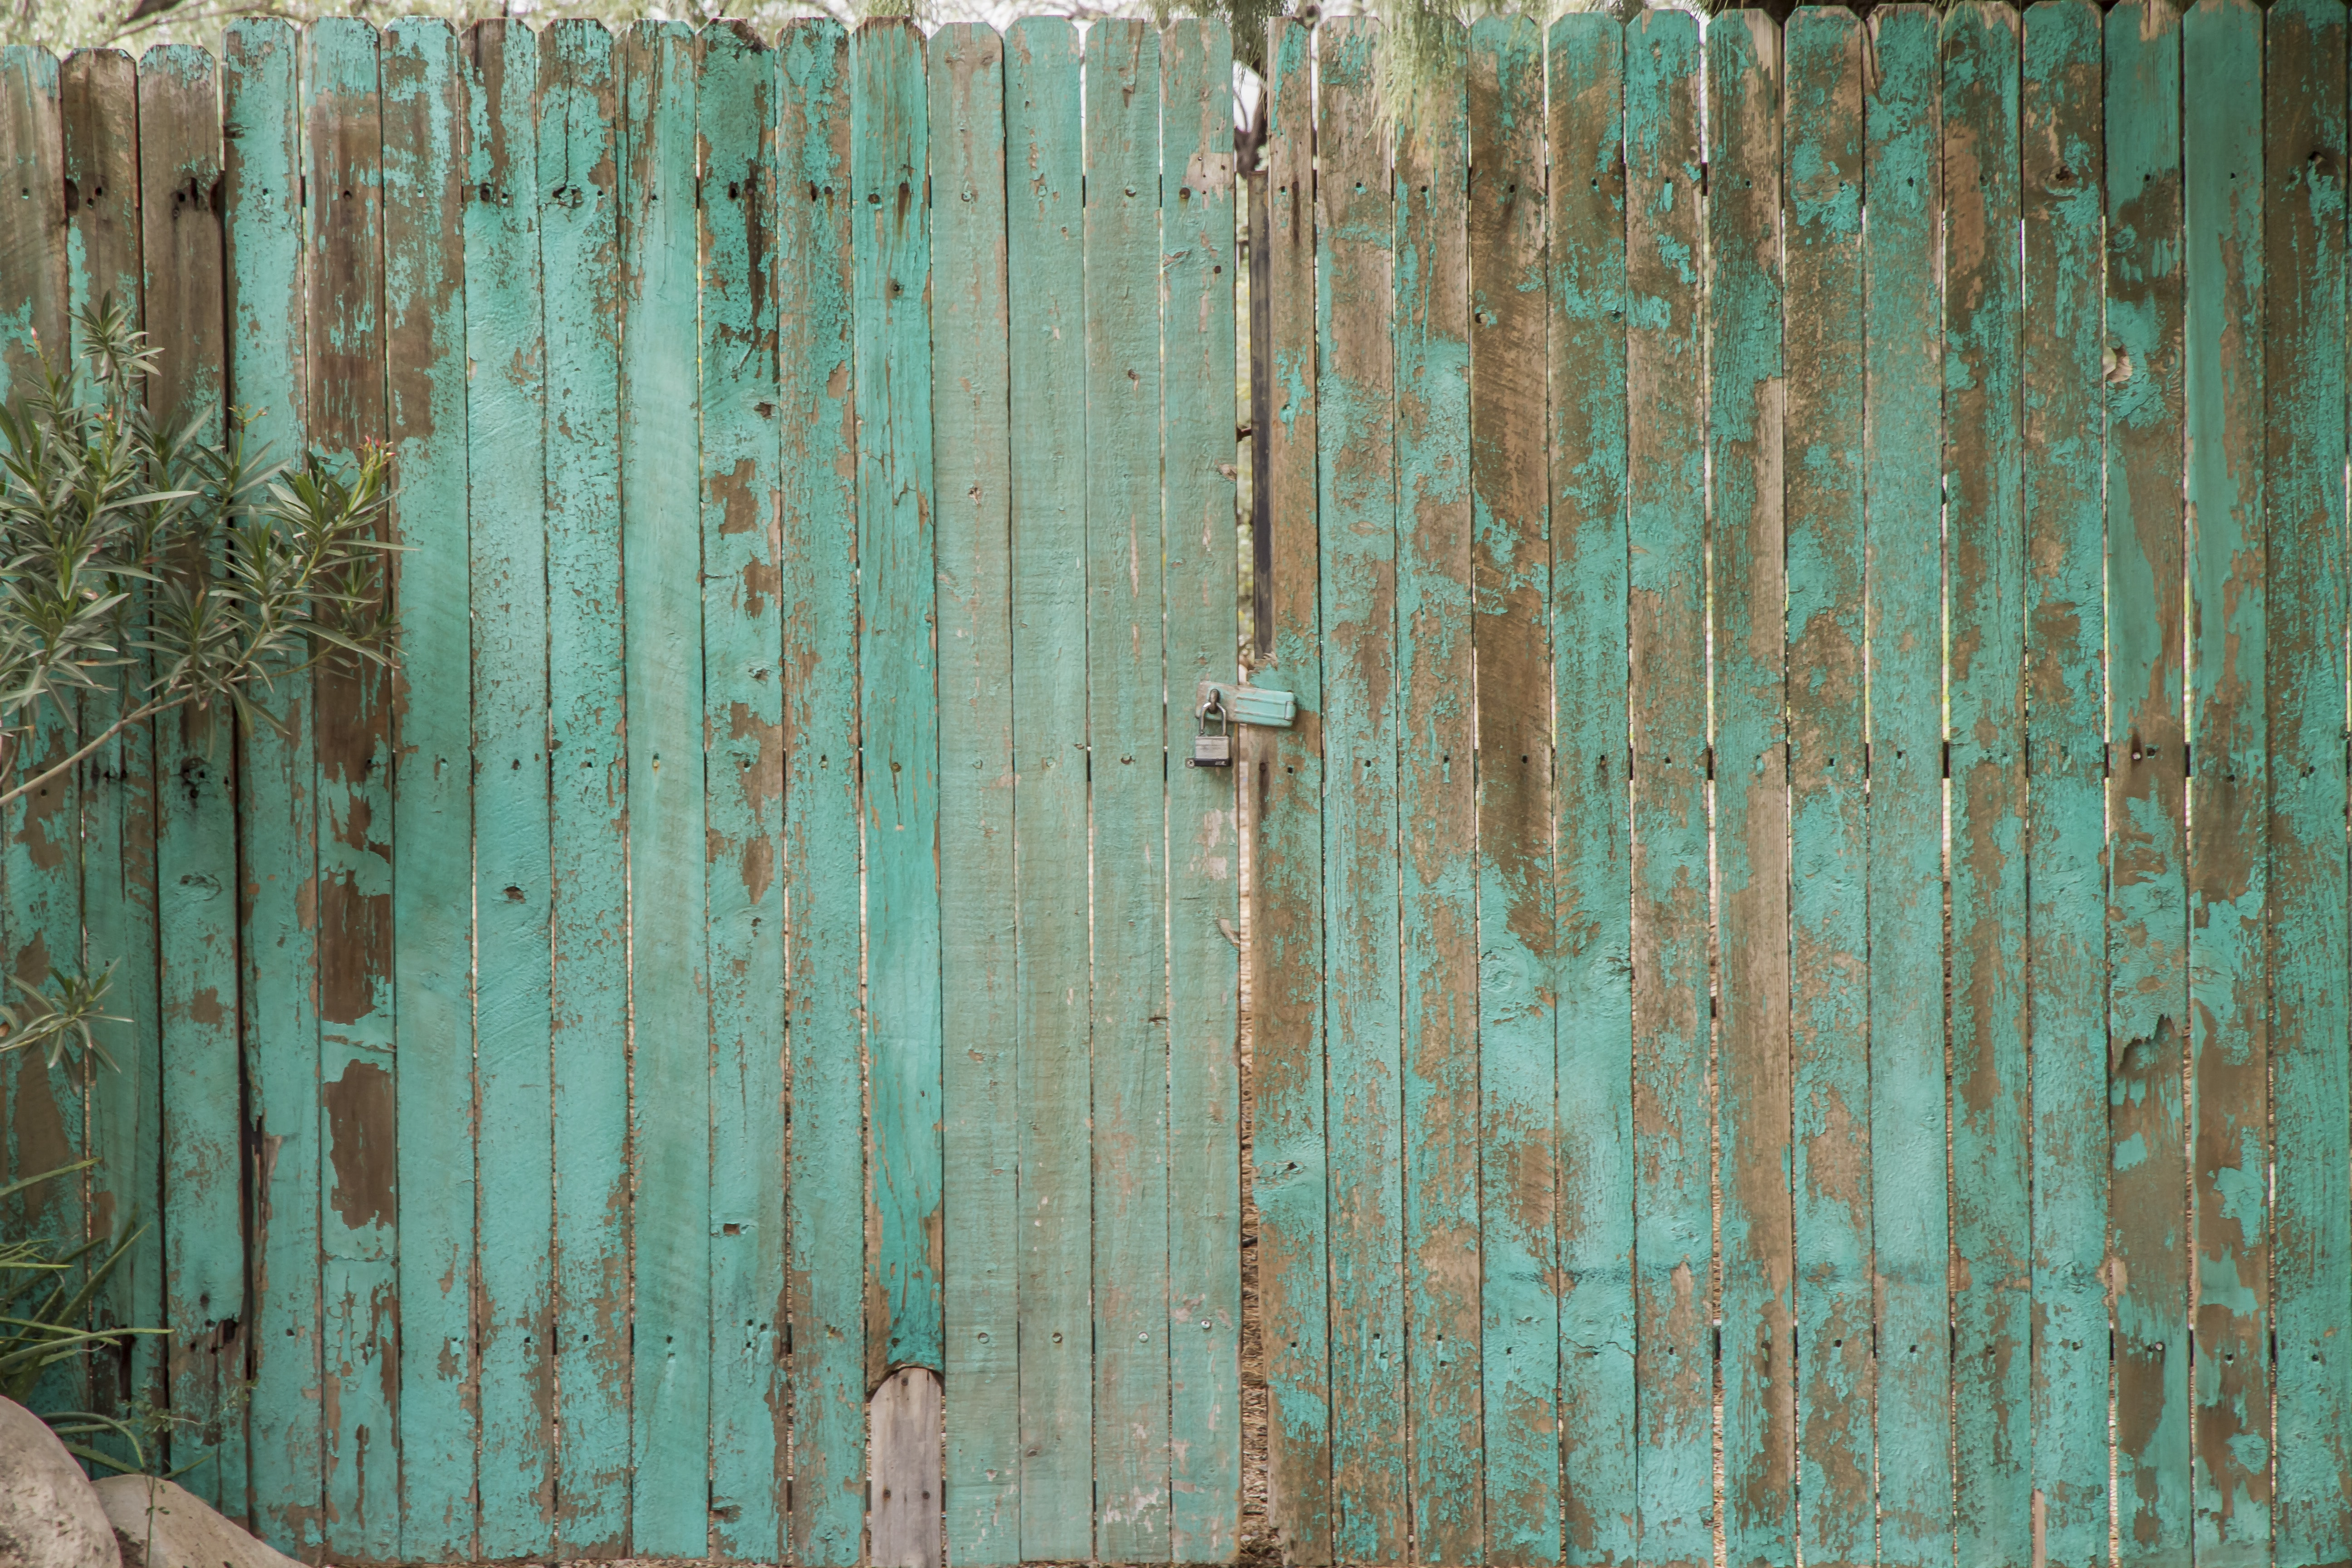 teal wooden gate